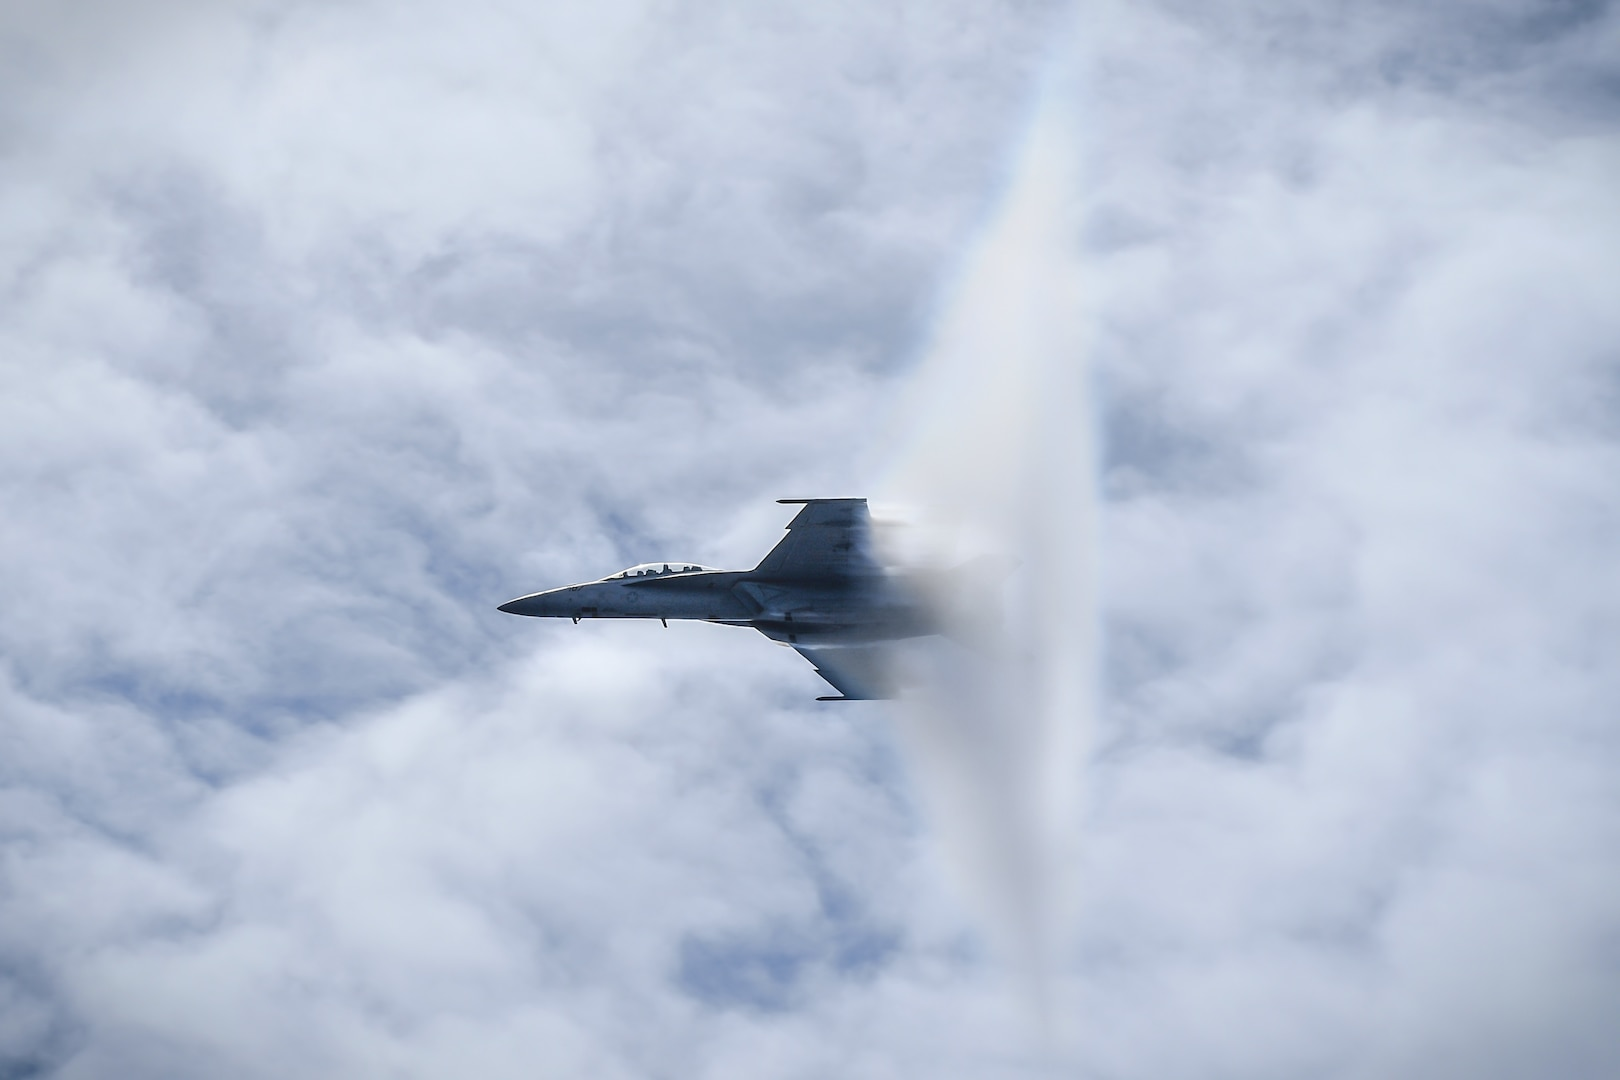 F/A-18F Super Hornet, assigned to Fighting Redcocks of Strike Fighter Attack Squadron (VFA) 22, breaks sound barrier over aircraft carrier USS Theodore Roosevelt during airpower demonstration, Pacific Ocean, May 3, 2018 (U.S. Navy/Spencer Roberts)